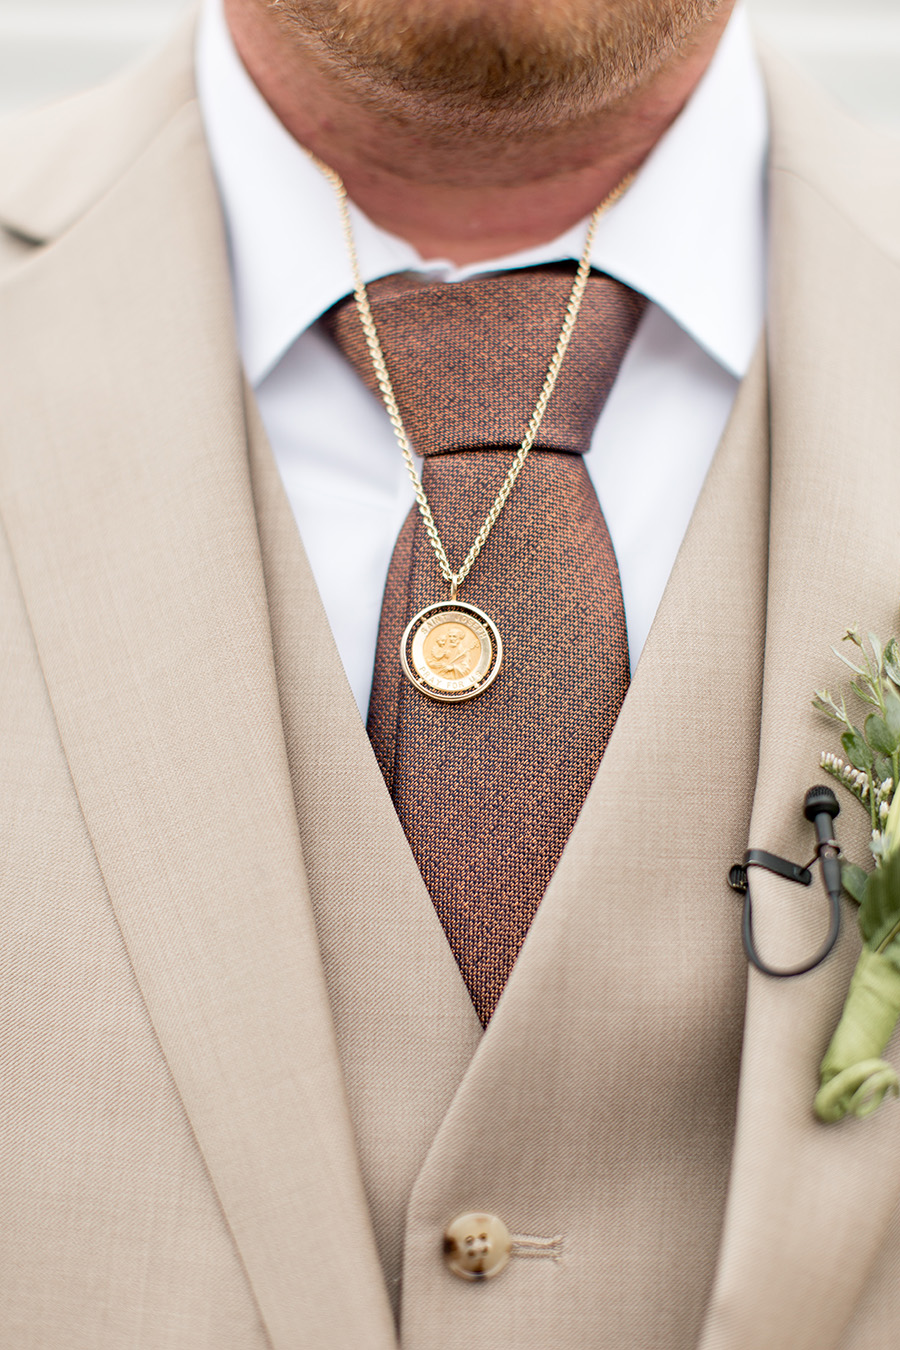 Groom wearing a memorial necklace made from his fathers wedding band